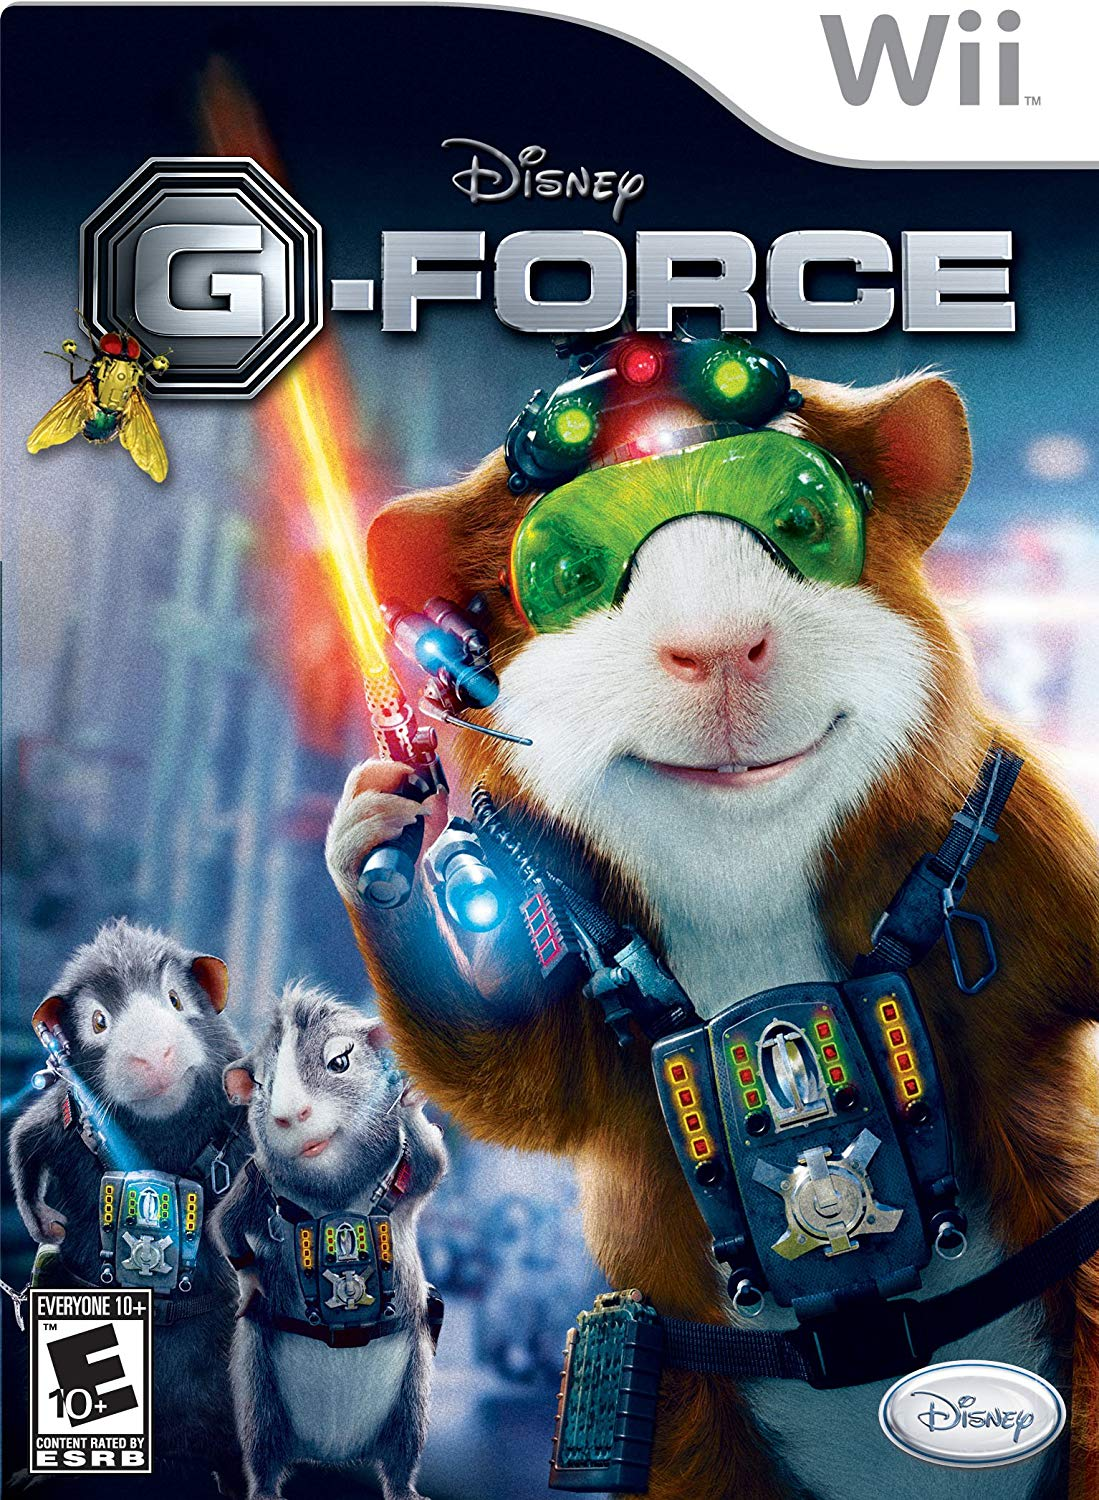 G-Force (2009) (Video Game)